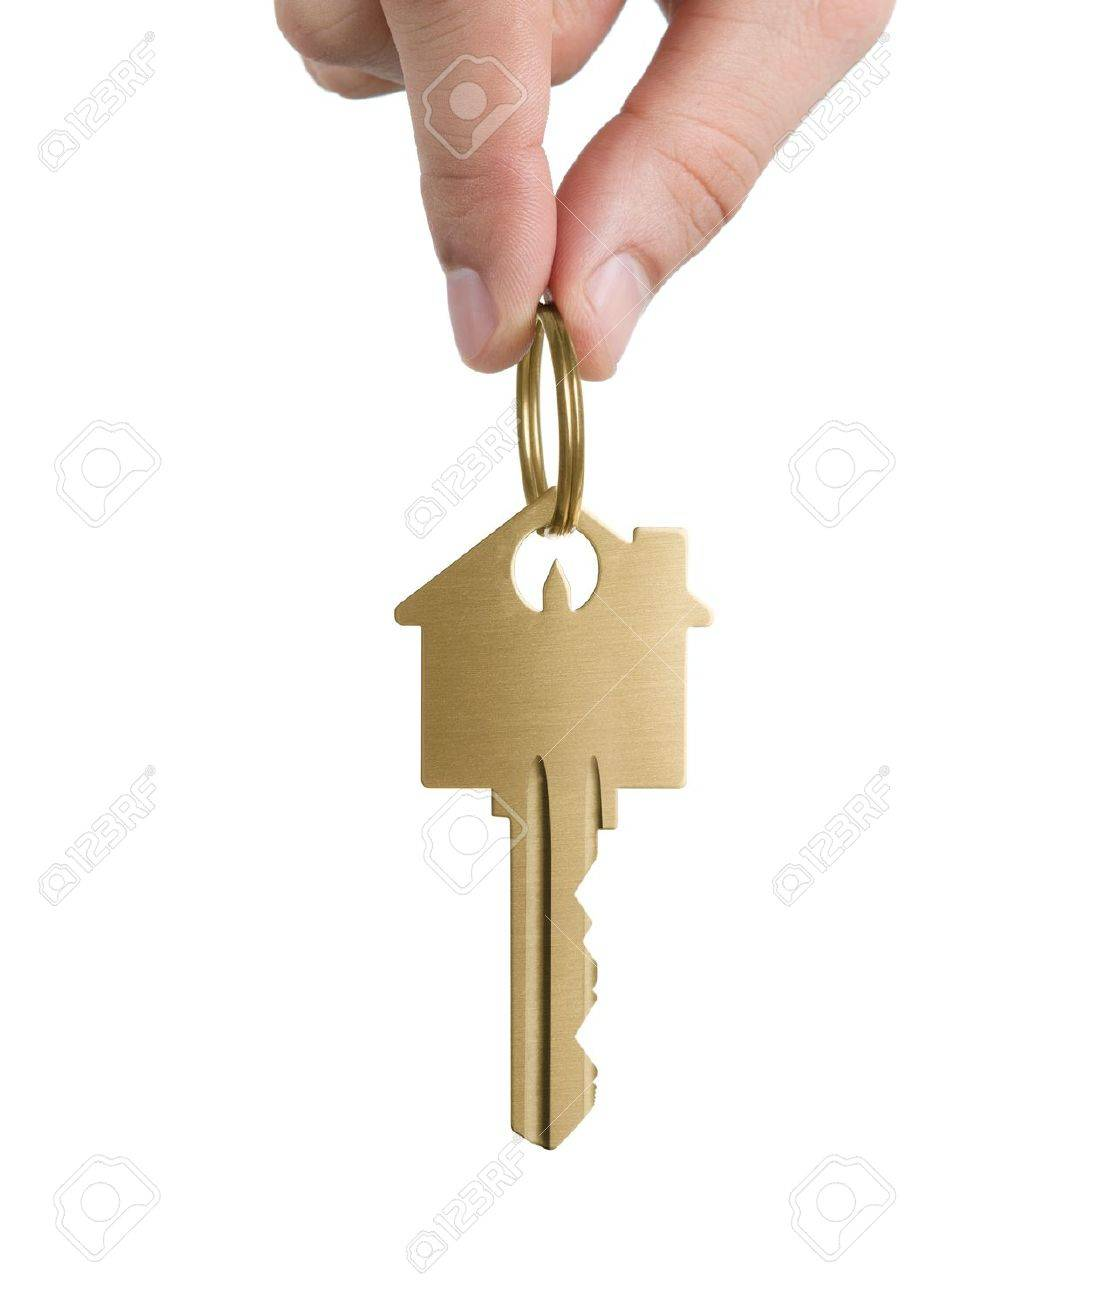 Human Hand Holding Key To A Dream House Isolated On White Background Stock Photo - 12538614